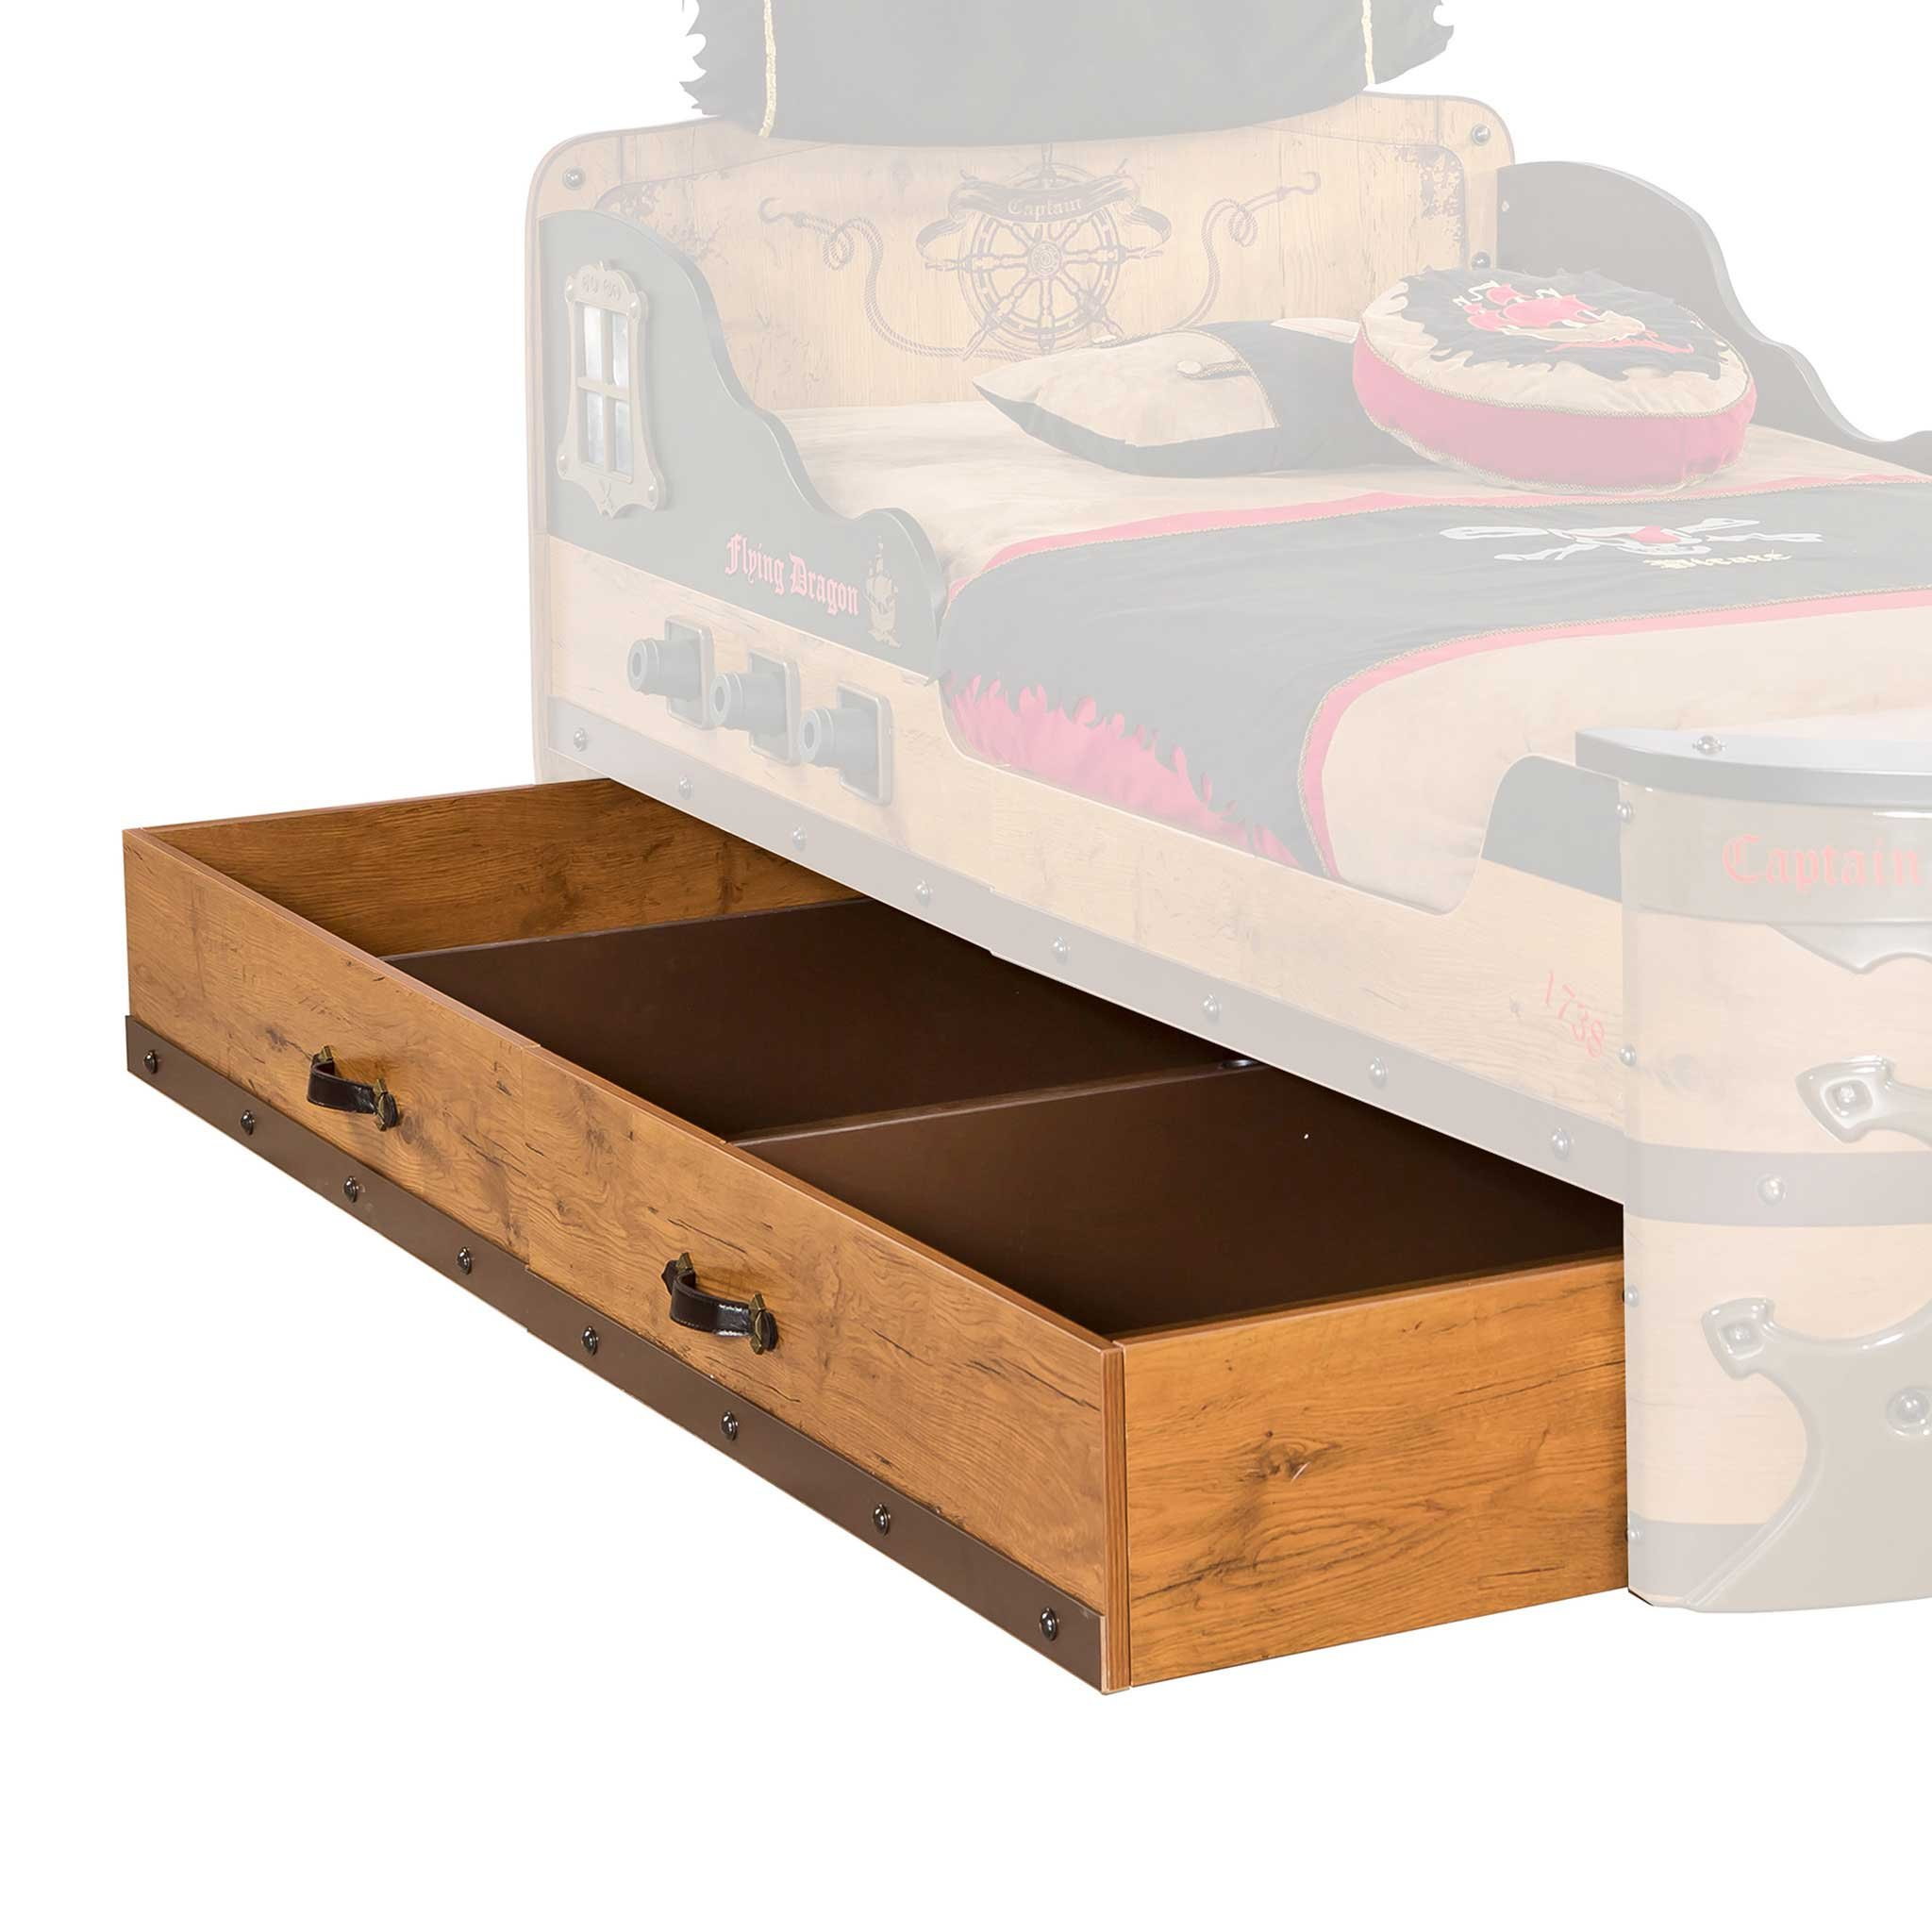 Cilek 20.13.1318.00 Pirate Storage and Trundle Bed, Twin, Brown